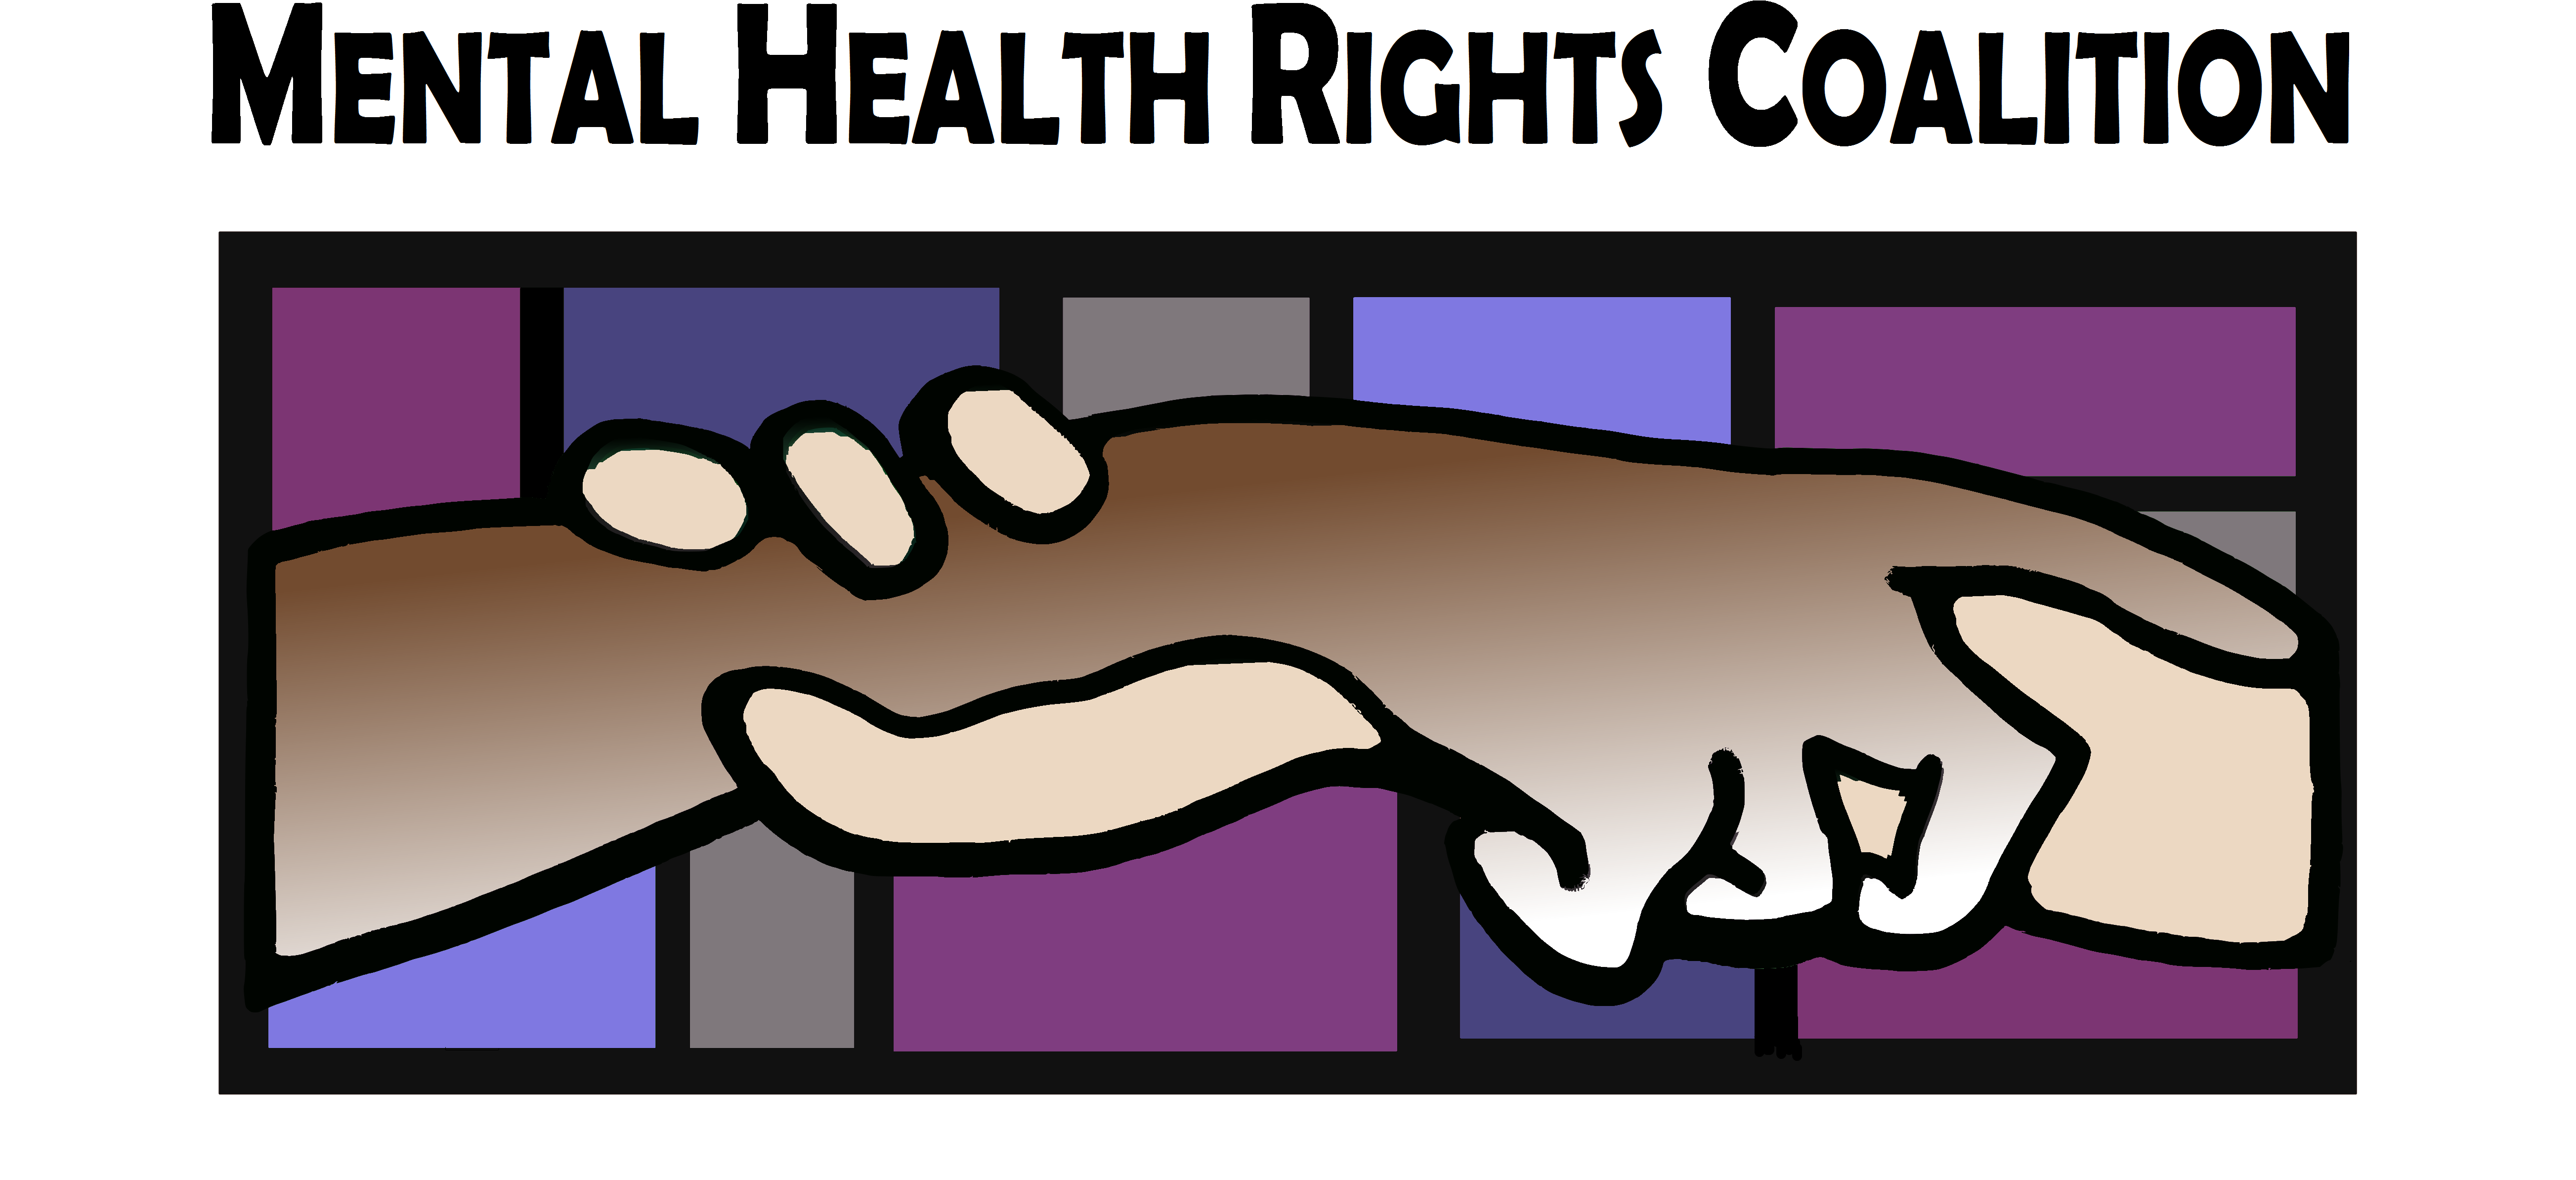 Mental Health Rights Coalition